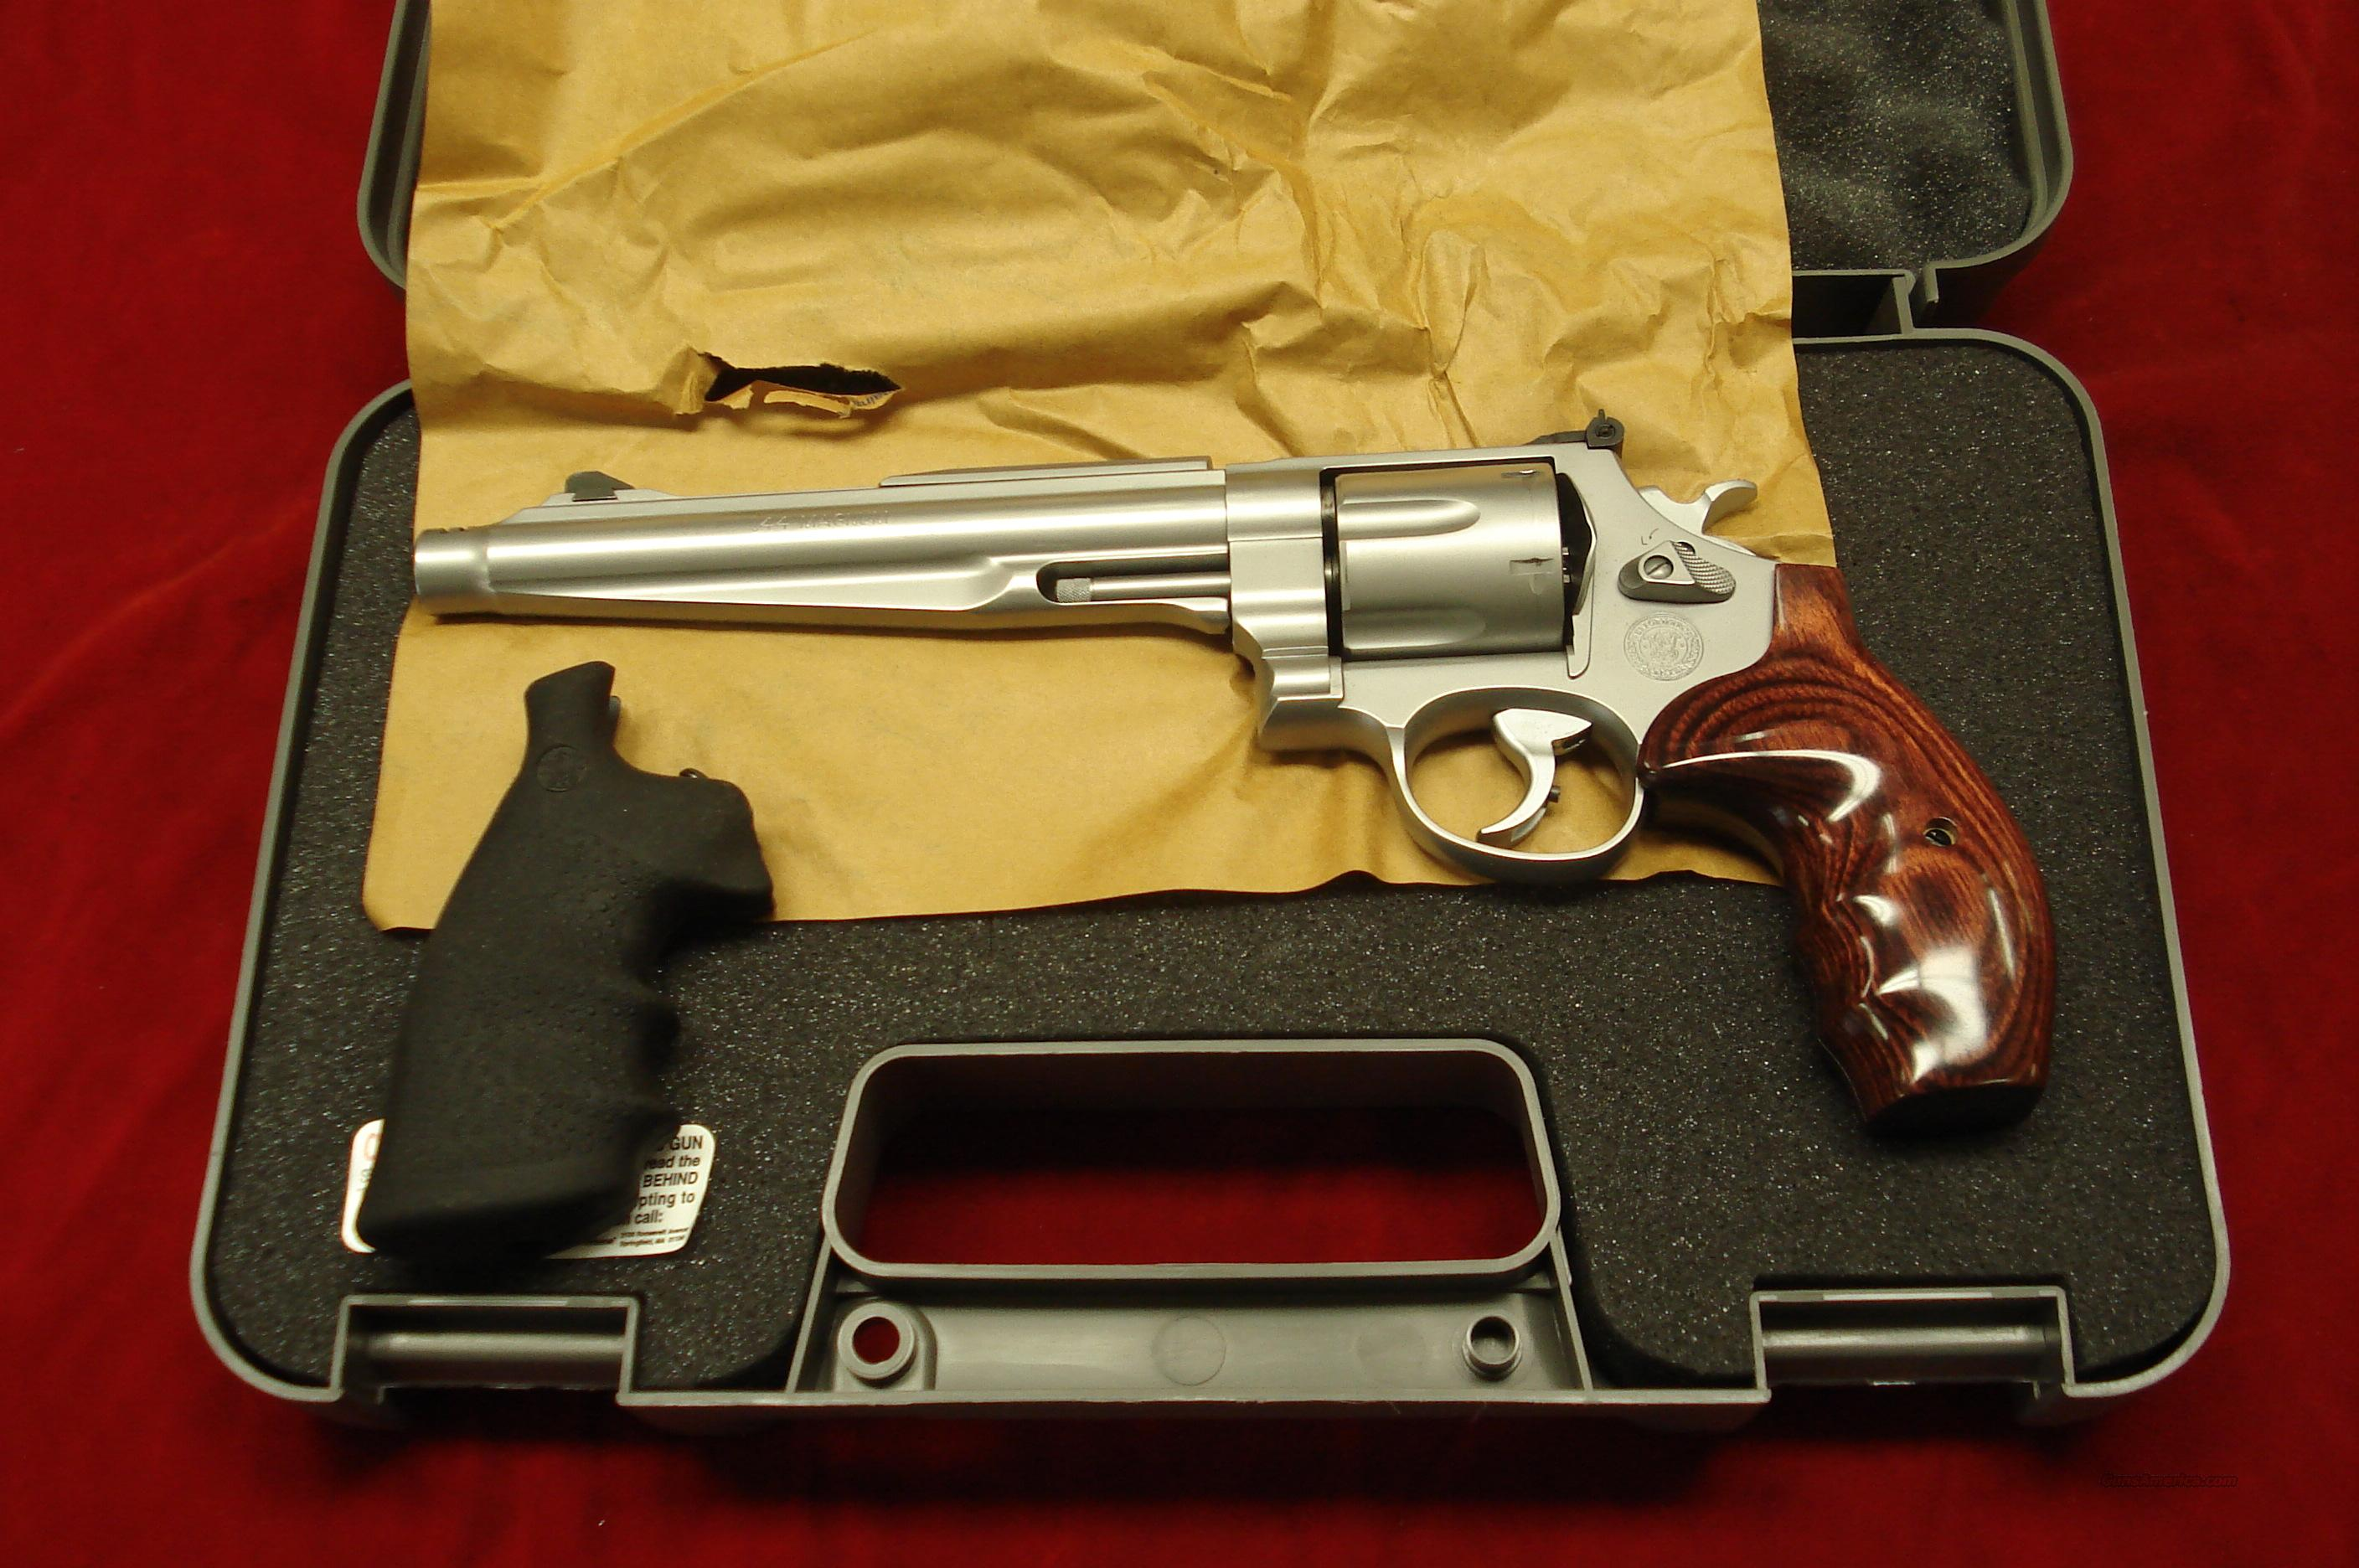 "SMITH AND WESSON PERFORMANCE CENTER 44 MAGNUM 7.5"" COMPENSATED STAINLESS NEW   Guns > Pistols > Smith & Wesson Revolvers > Performance Center"